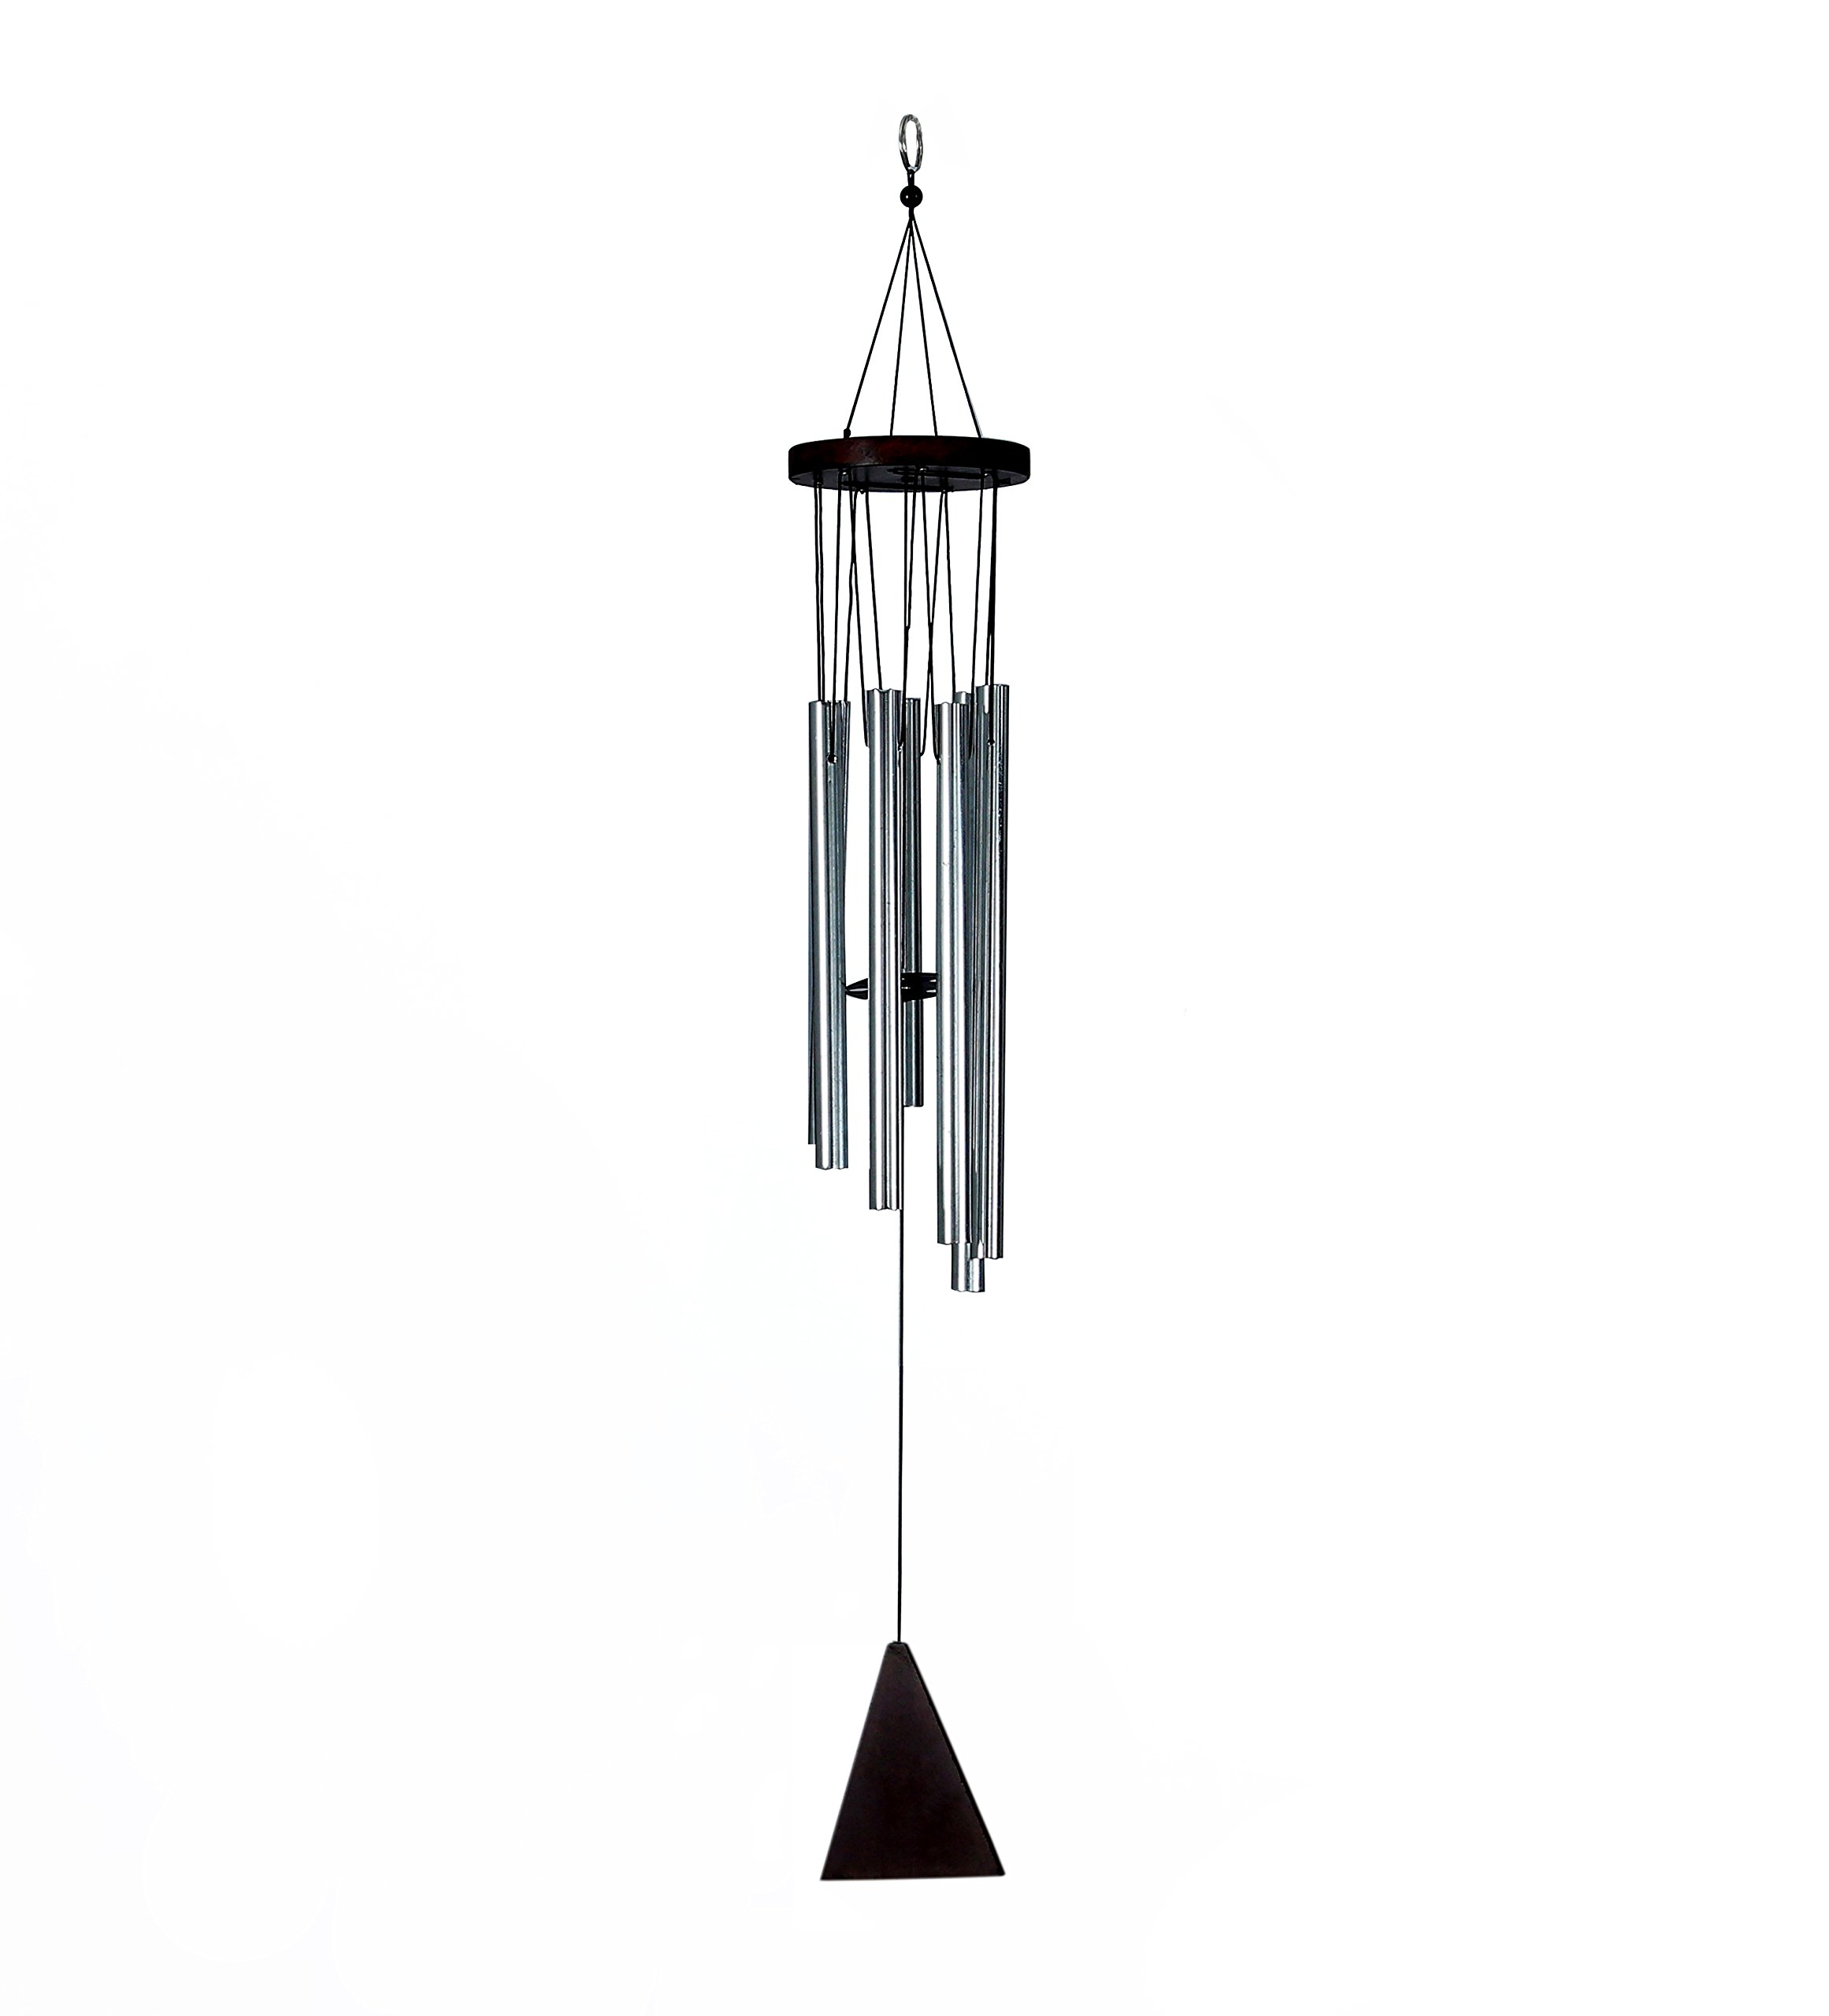 Skynet 7 Pipe Silver Color Wind Chimes for Home, Balcony and Bedroom Positive Energy, Wind Chimes with Good Sound-Silver Wind Chimes (B07CW99G82) Amazon Price History, Amazon Price Tracker